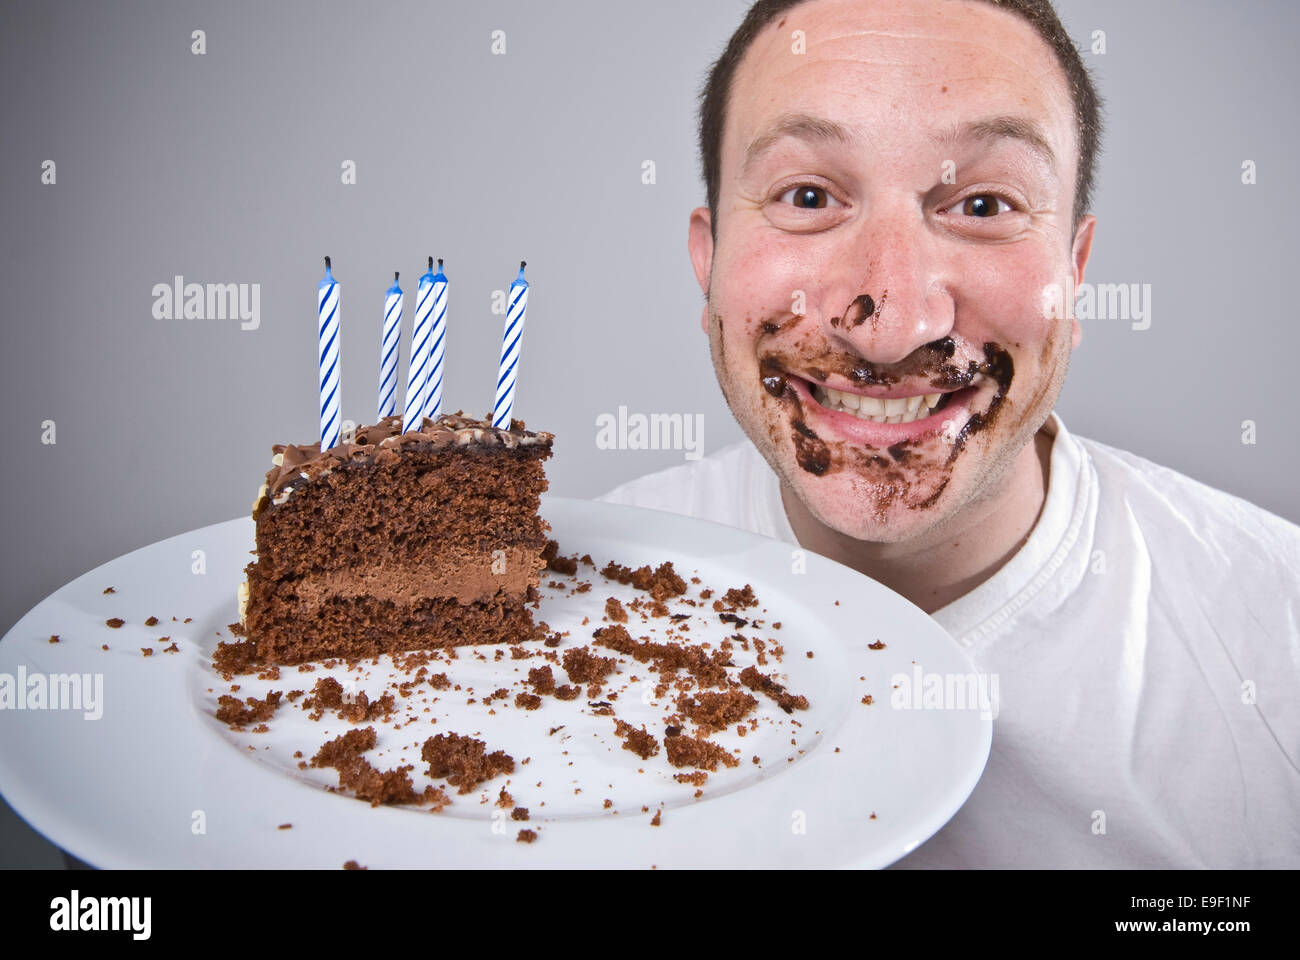 Images Of Eaten Birthday Cake : a man holds up a slice of chocolate birthday cake looking ...